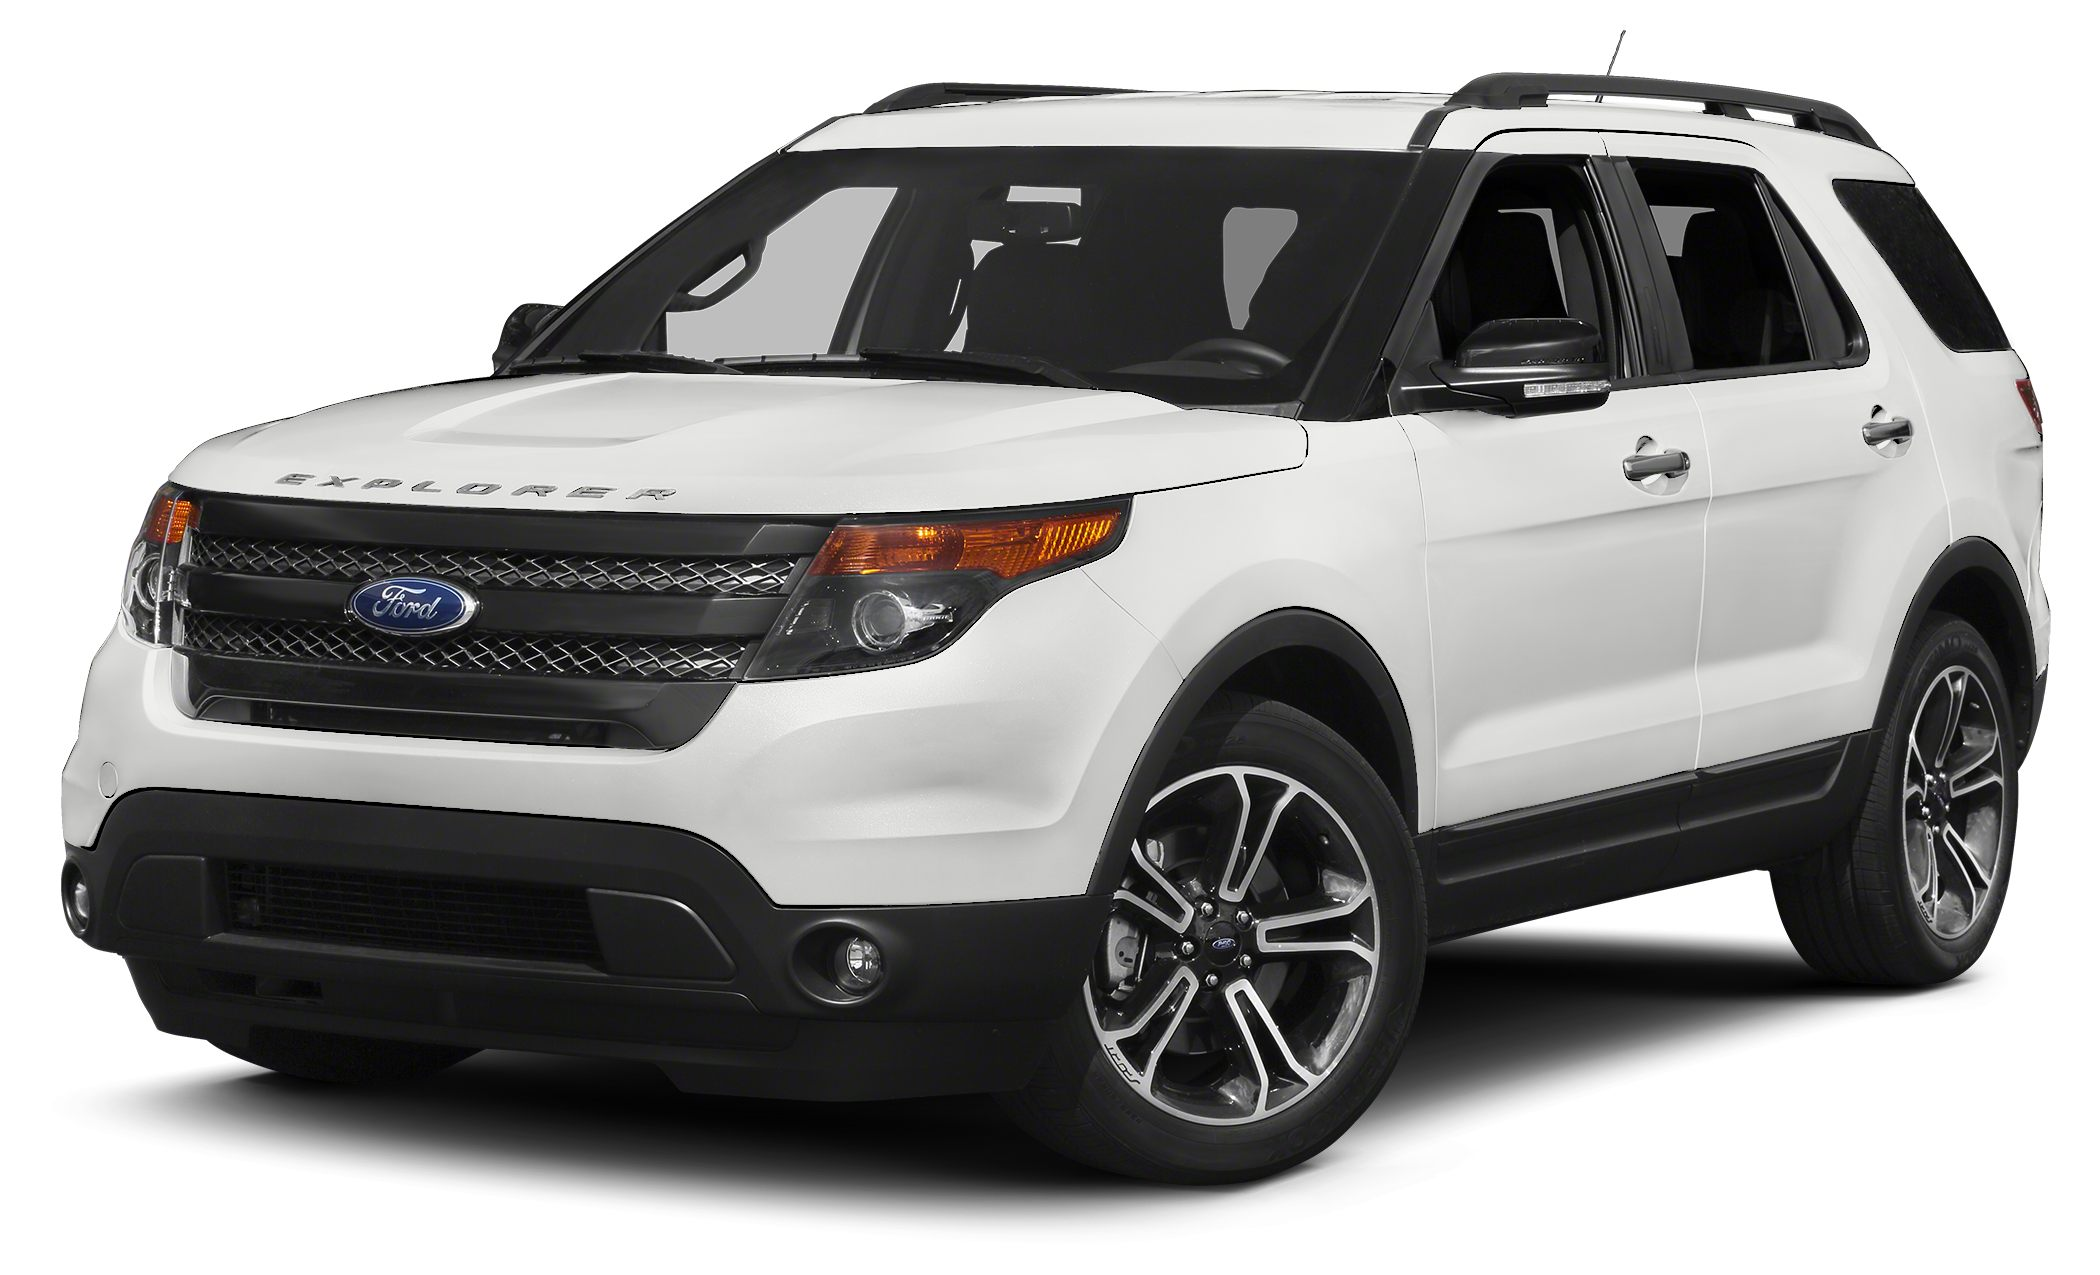 2014 Ford Explorer Sport SPORT HIGHLY EQUIPPED DUAL PANEL MOONROOF ADAPTIVE CRUISE